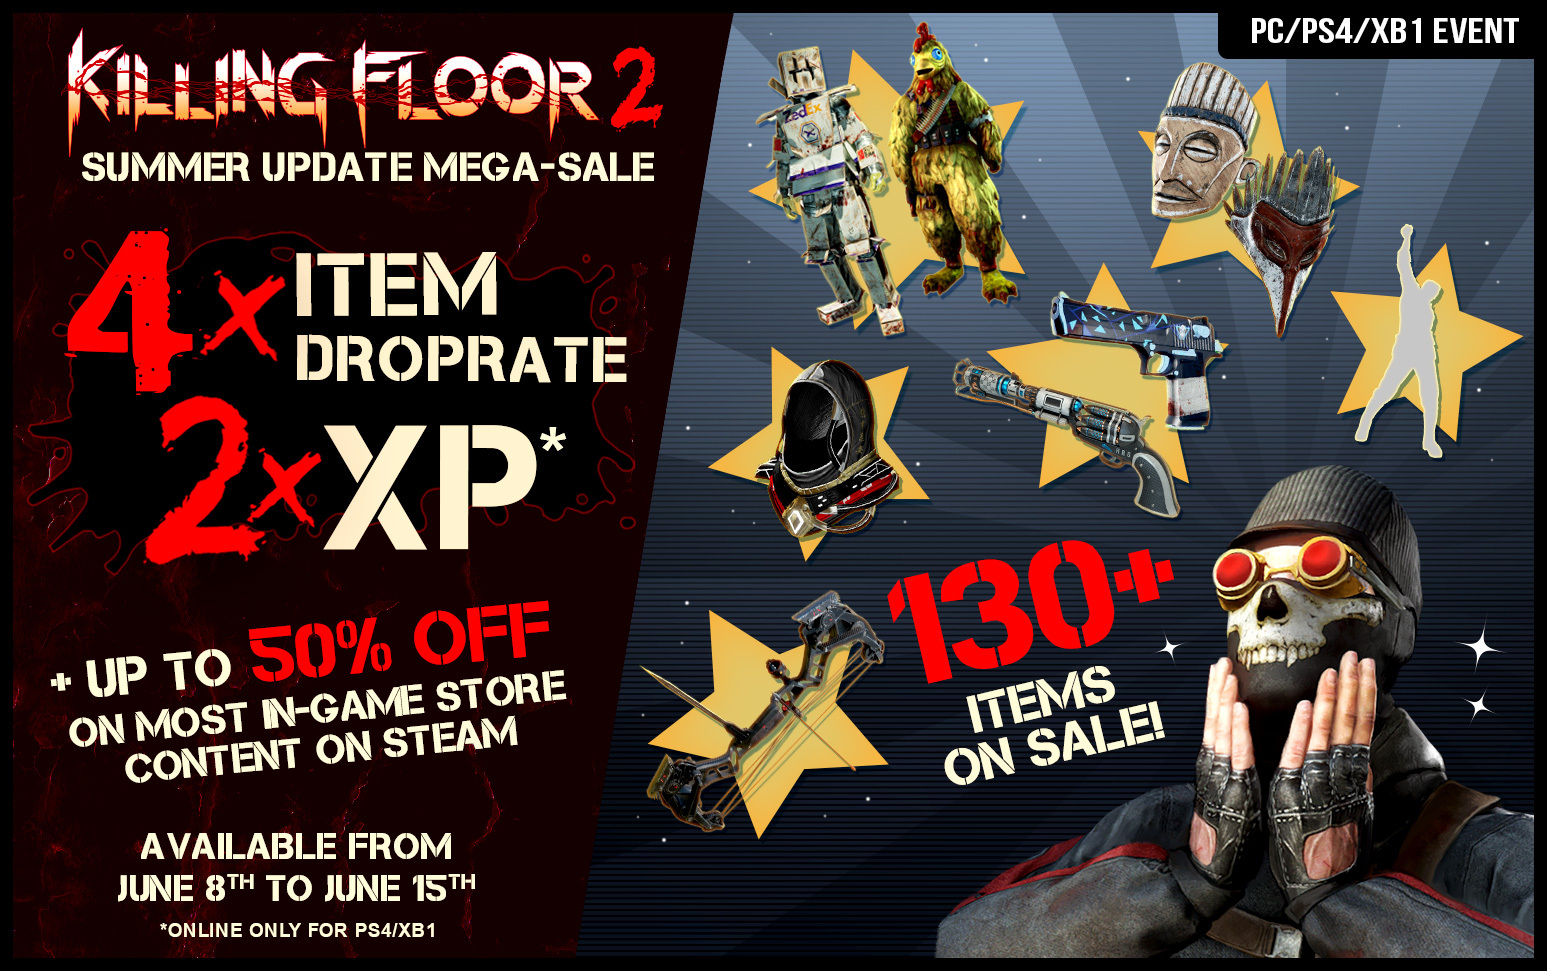 Perilous Plunder Double XP, Increased Drops and Sale!